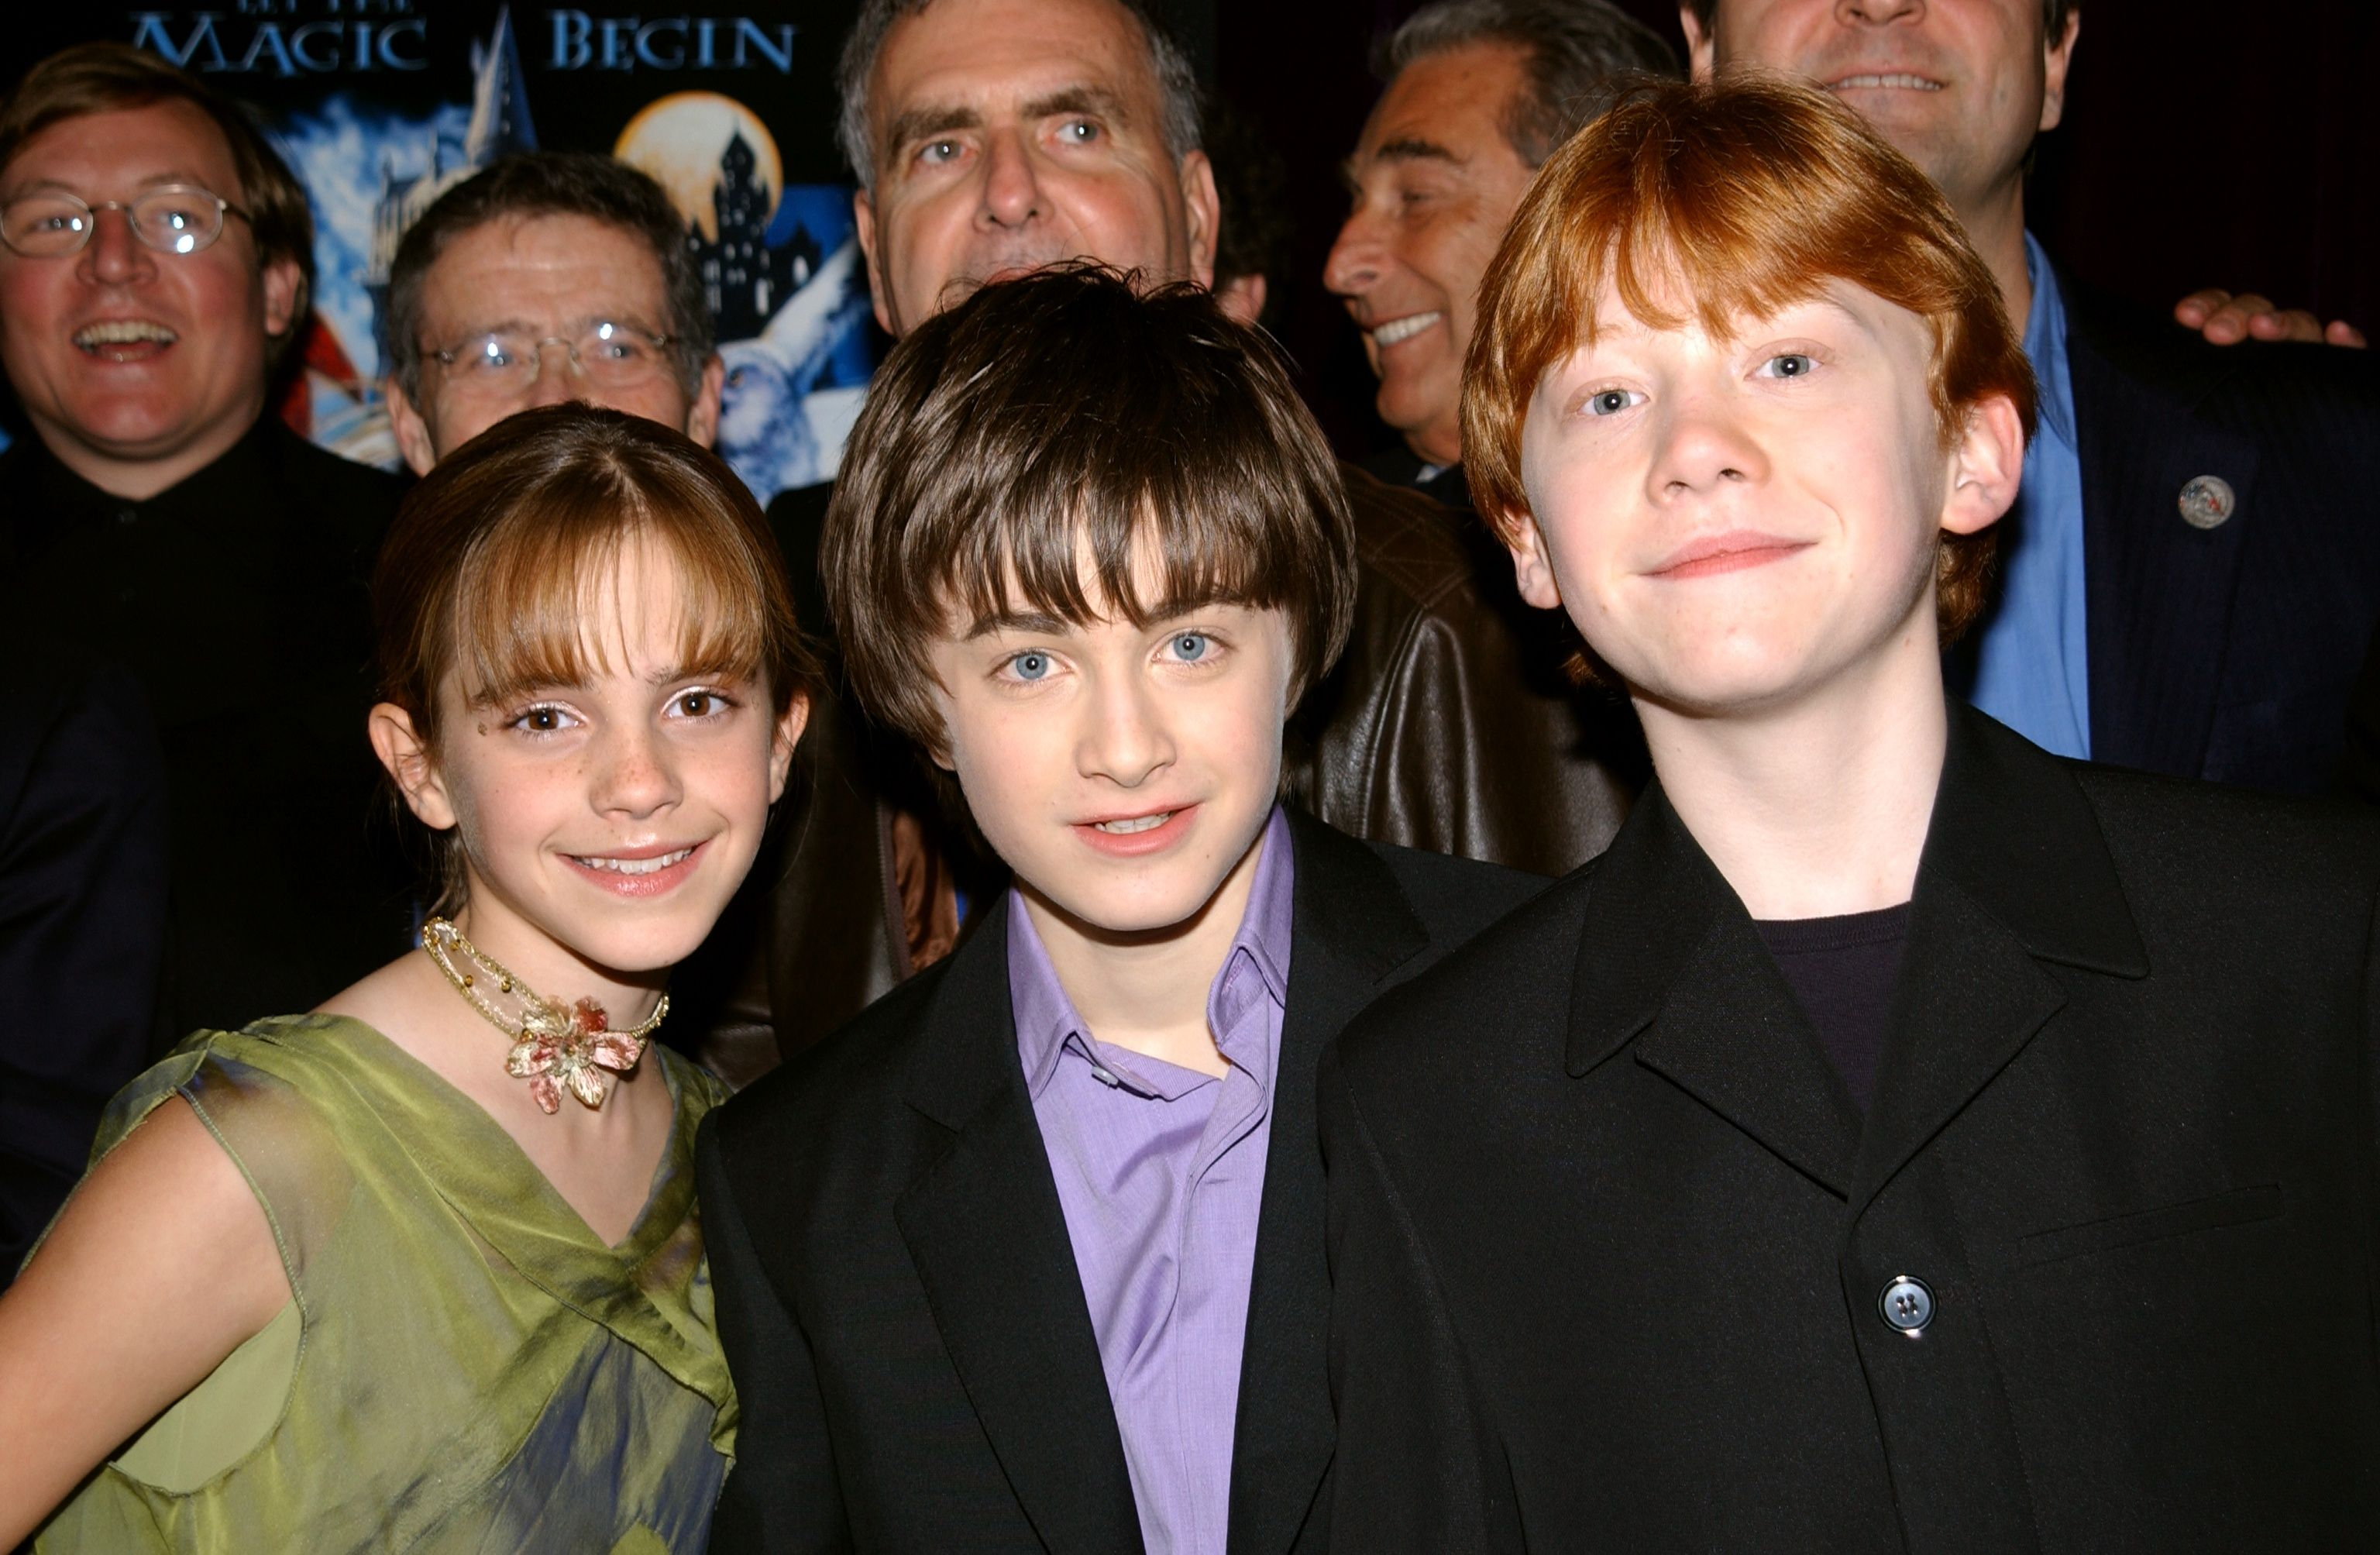 Daniel Radcliffe, Emma Watson and Rupert Grint/Photo:Getty Images